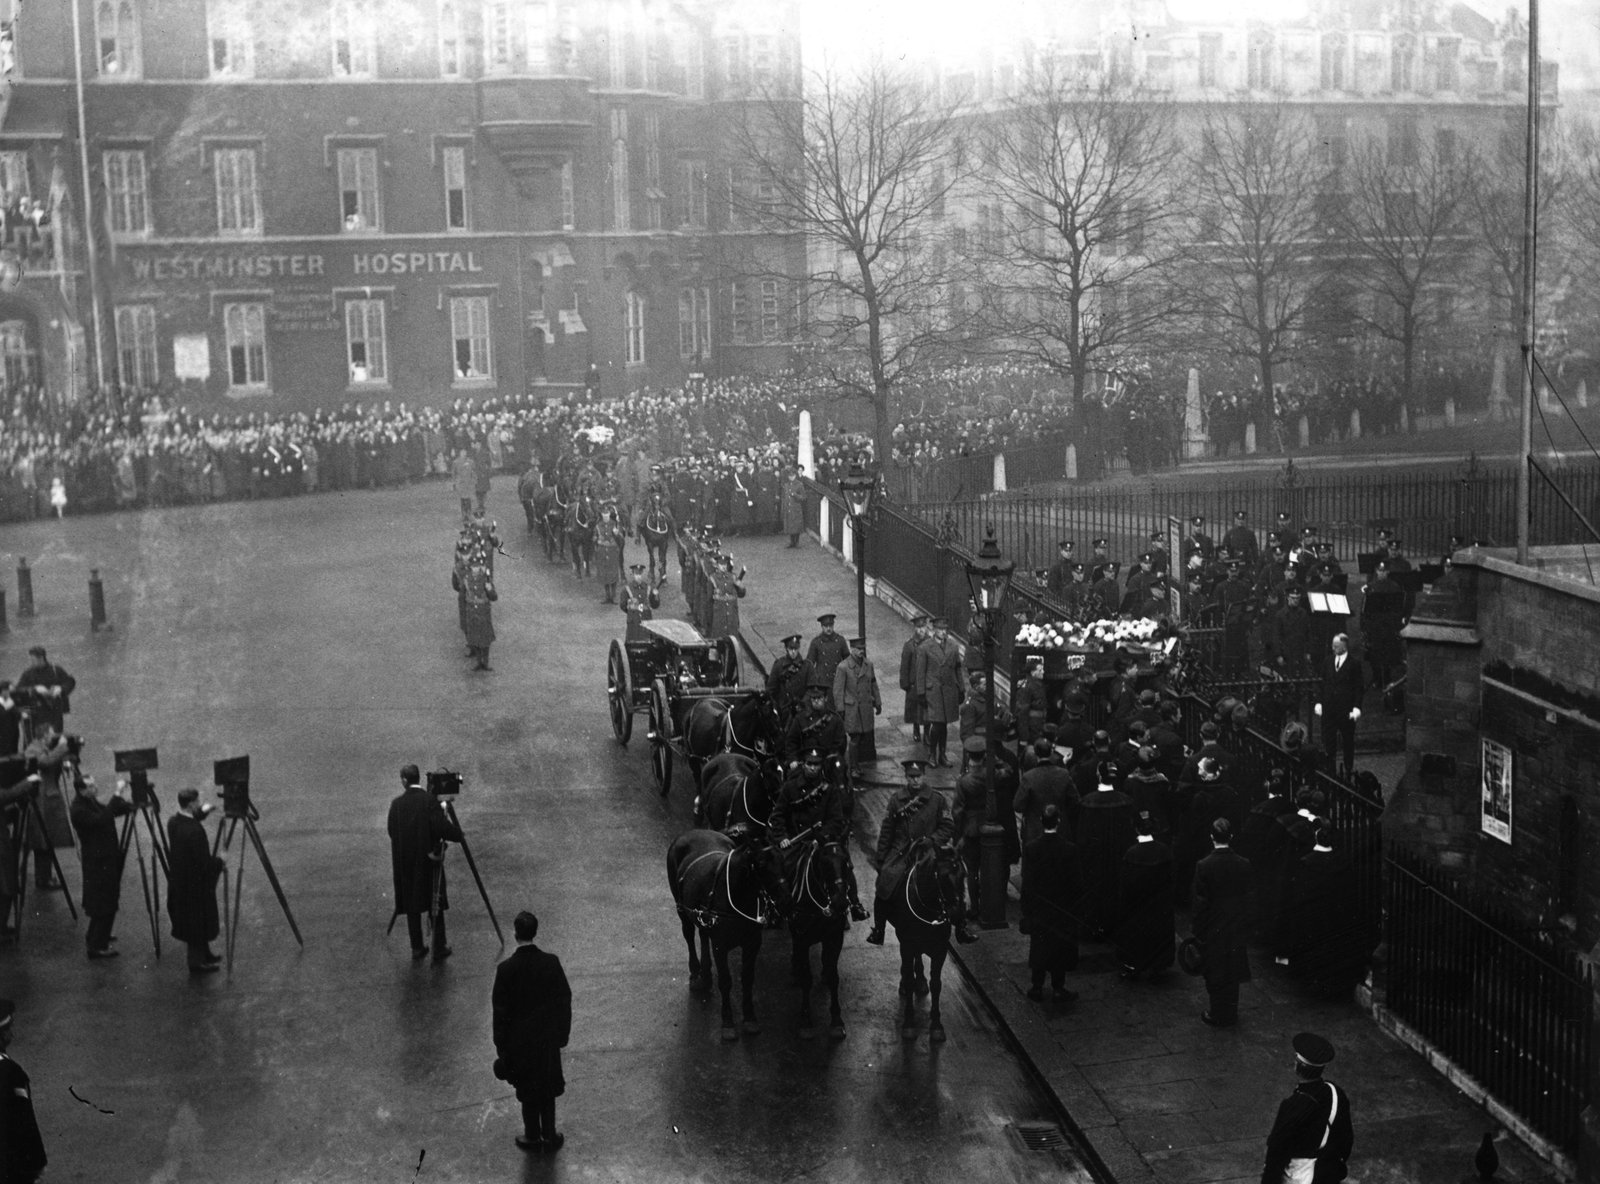 Image - A funeral procession for the British officers killed in Dublin on Bloody Sunday arrives at Westminster Abbey in London. (Photo by A. R. Coster/Topical Press Agency/Getty Images)